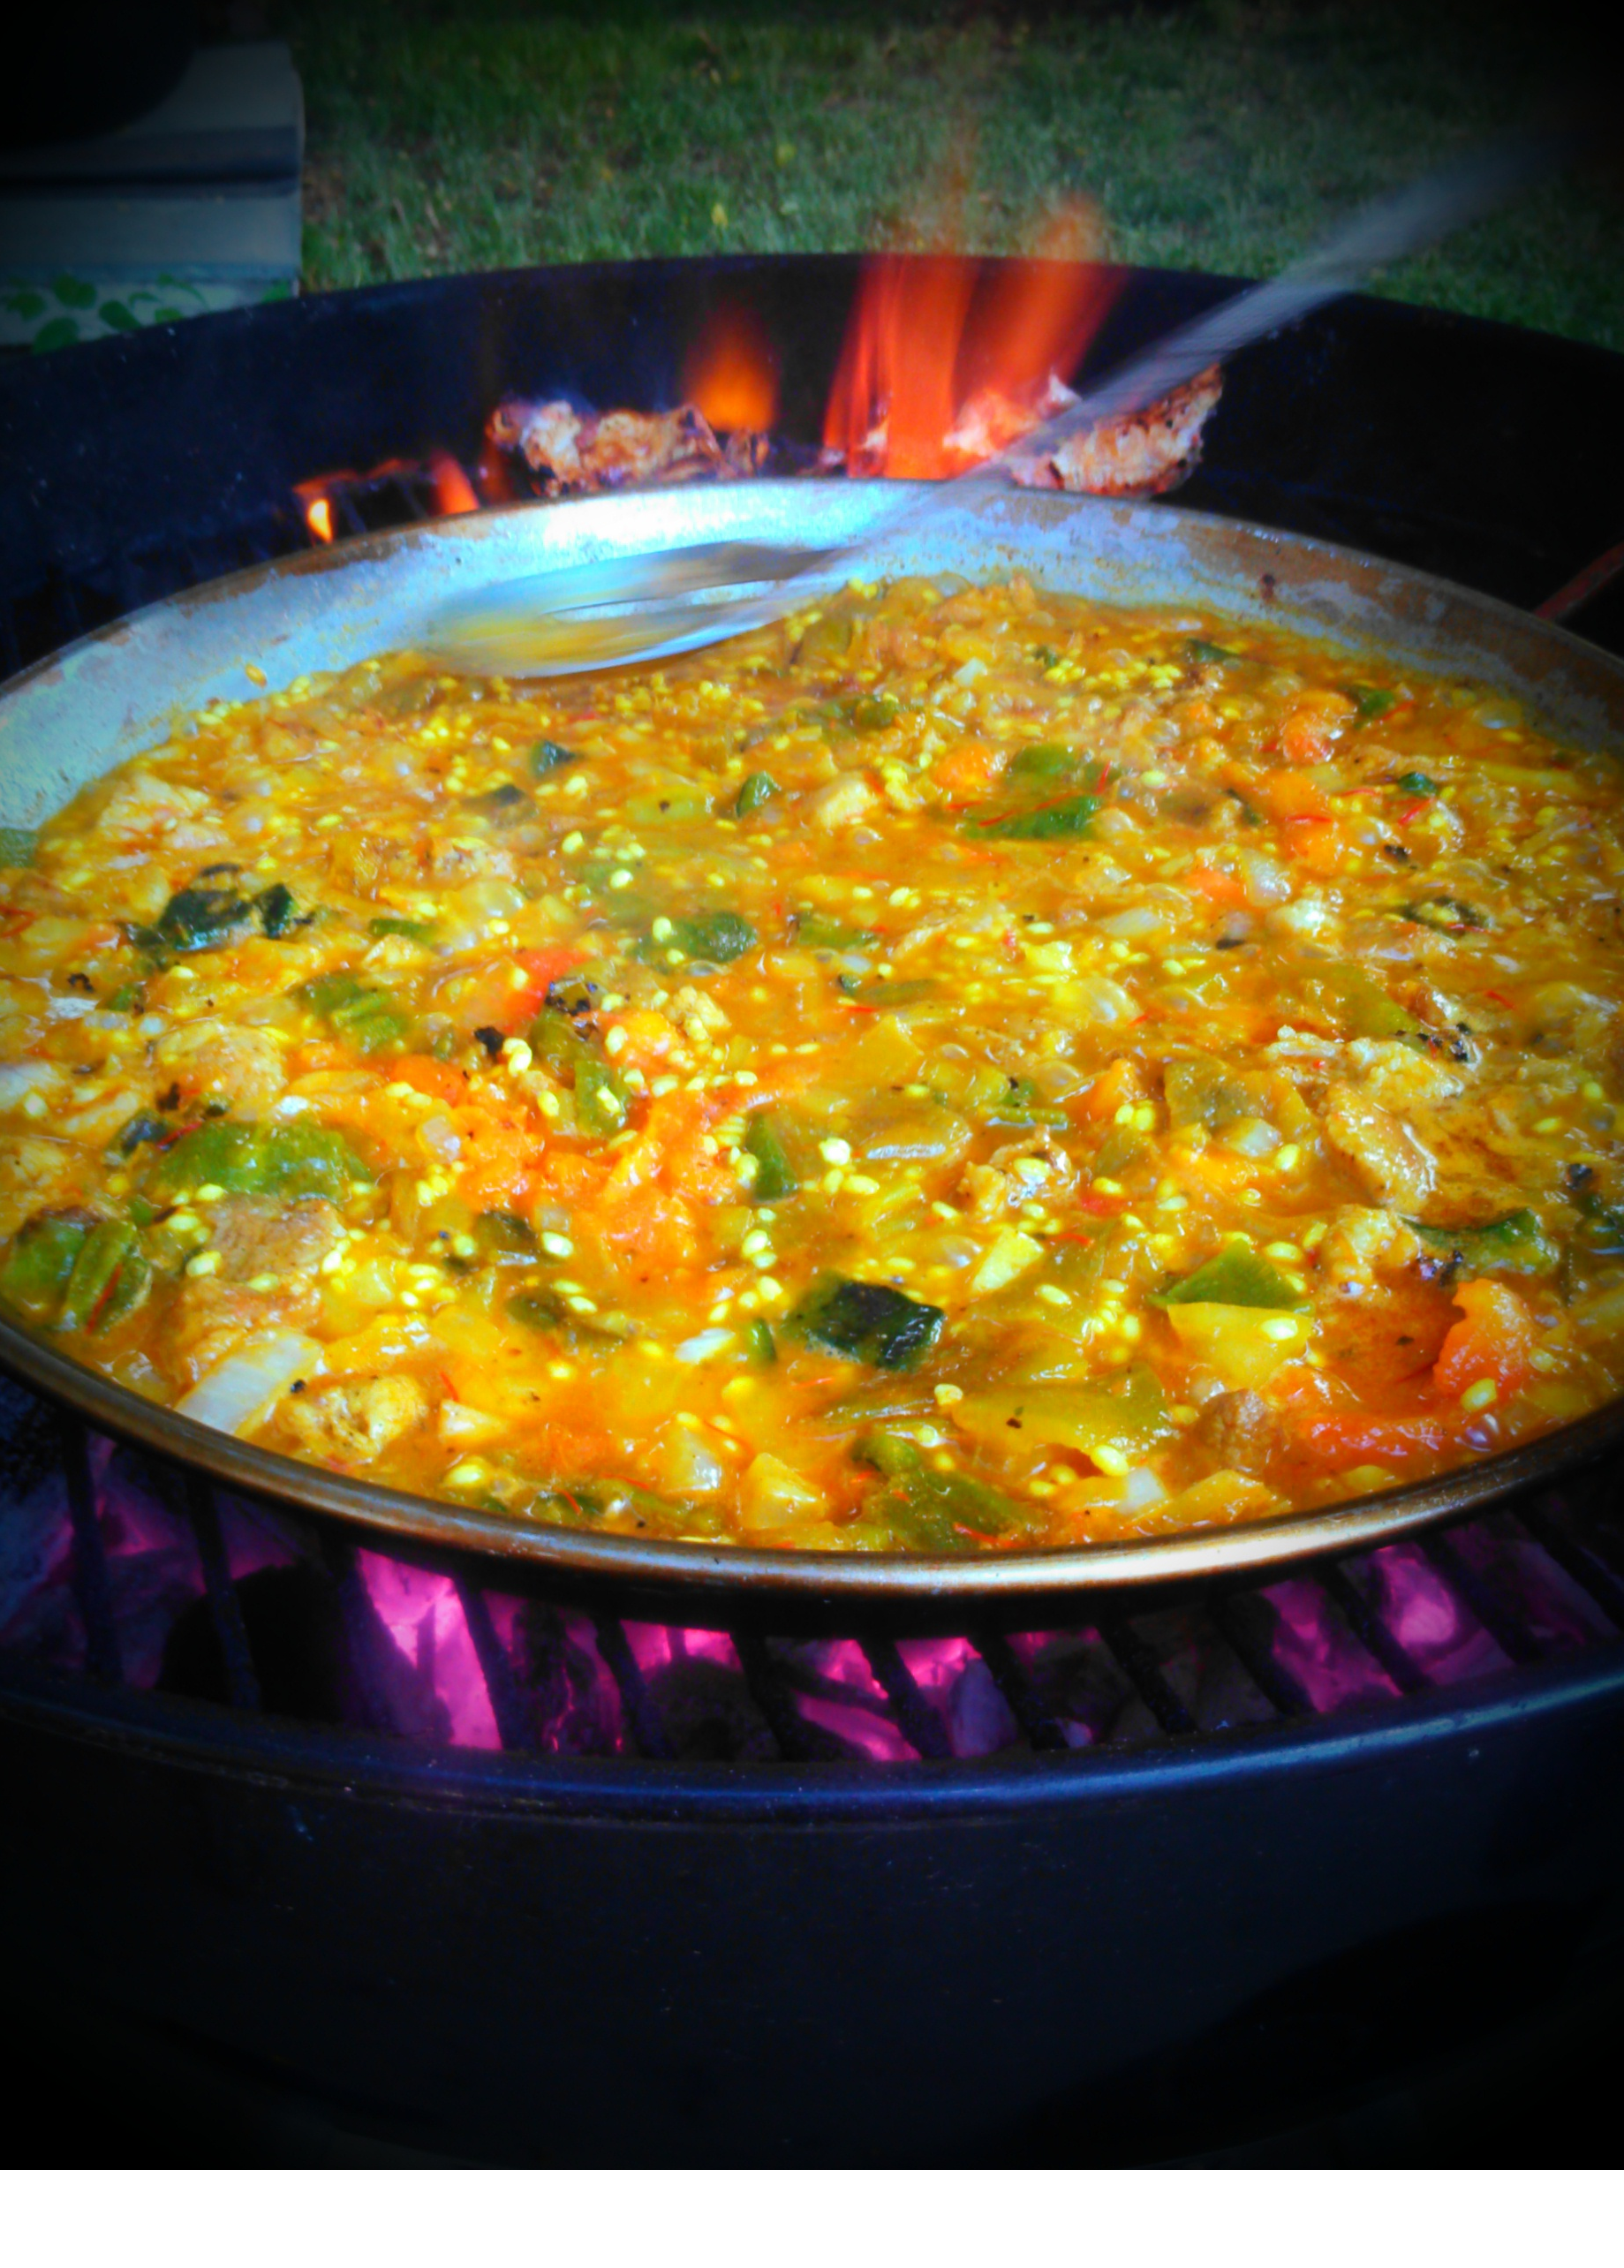 Picture of Paella on the Barbecue